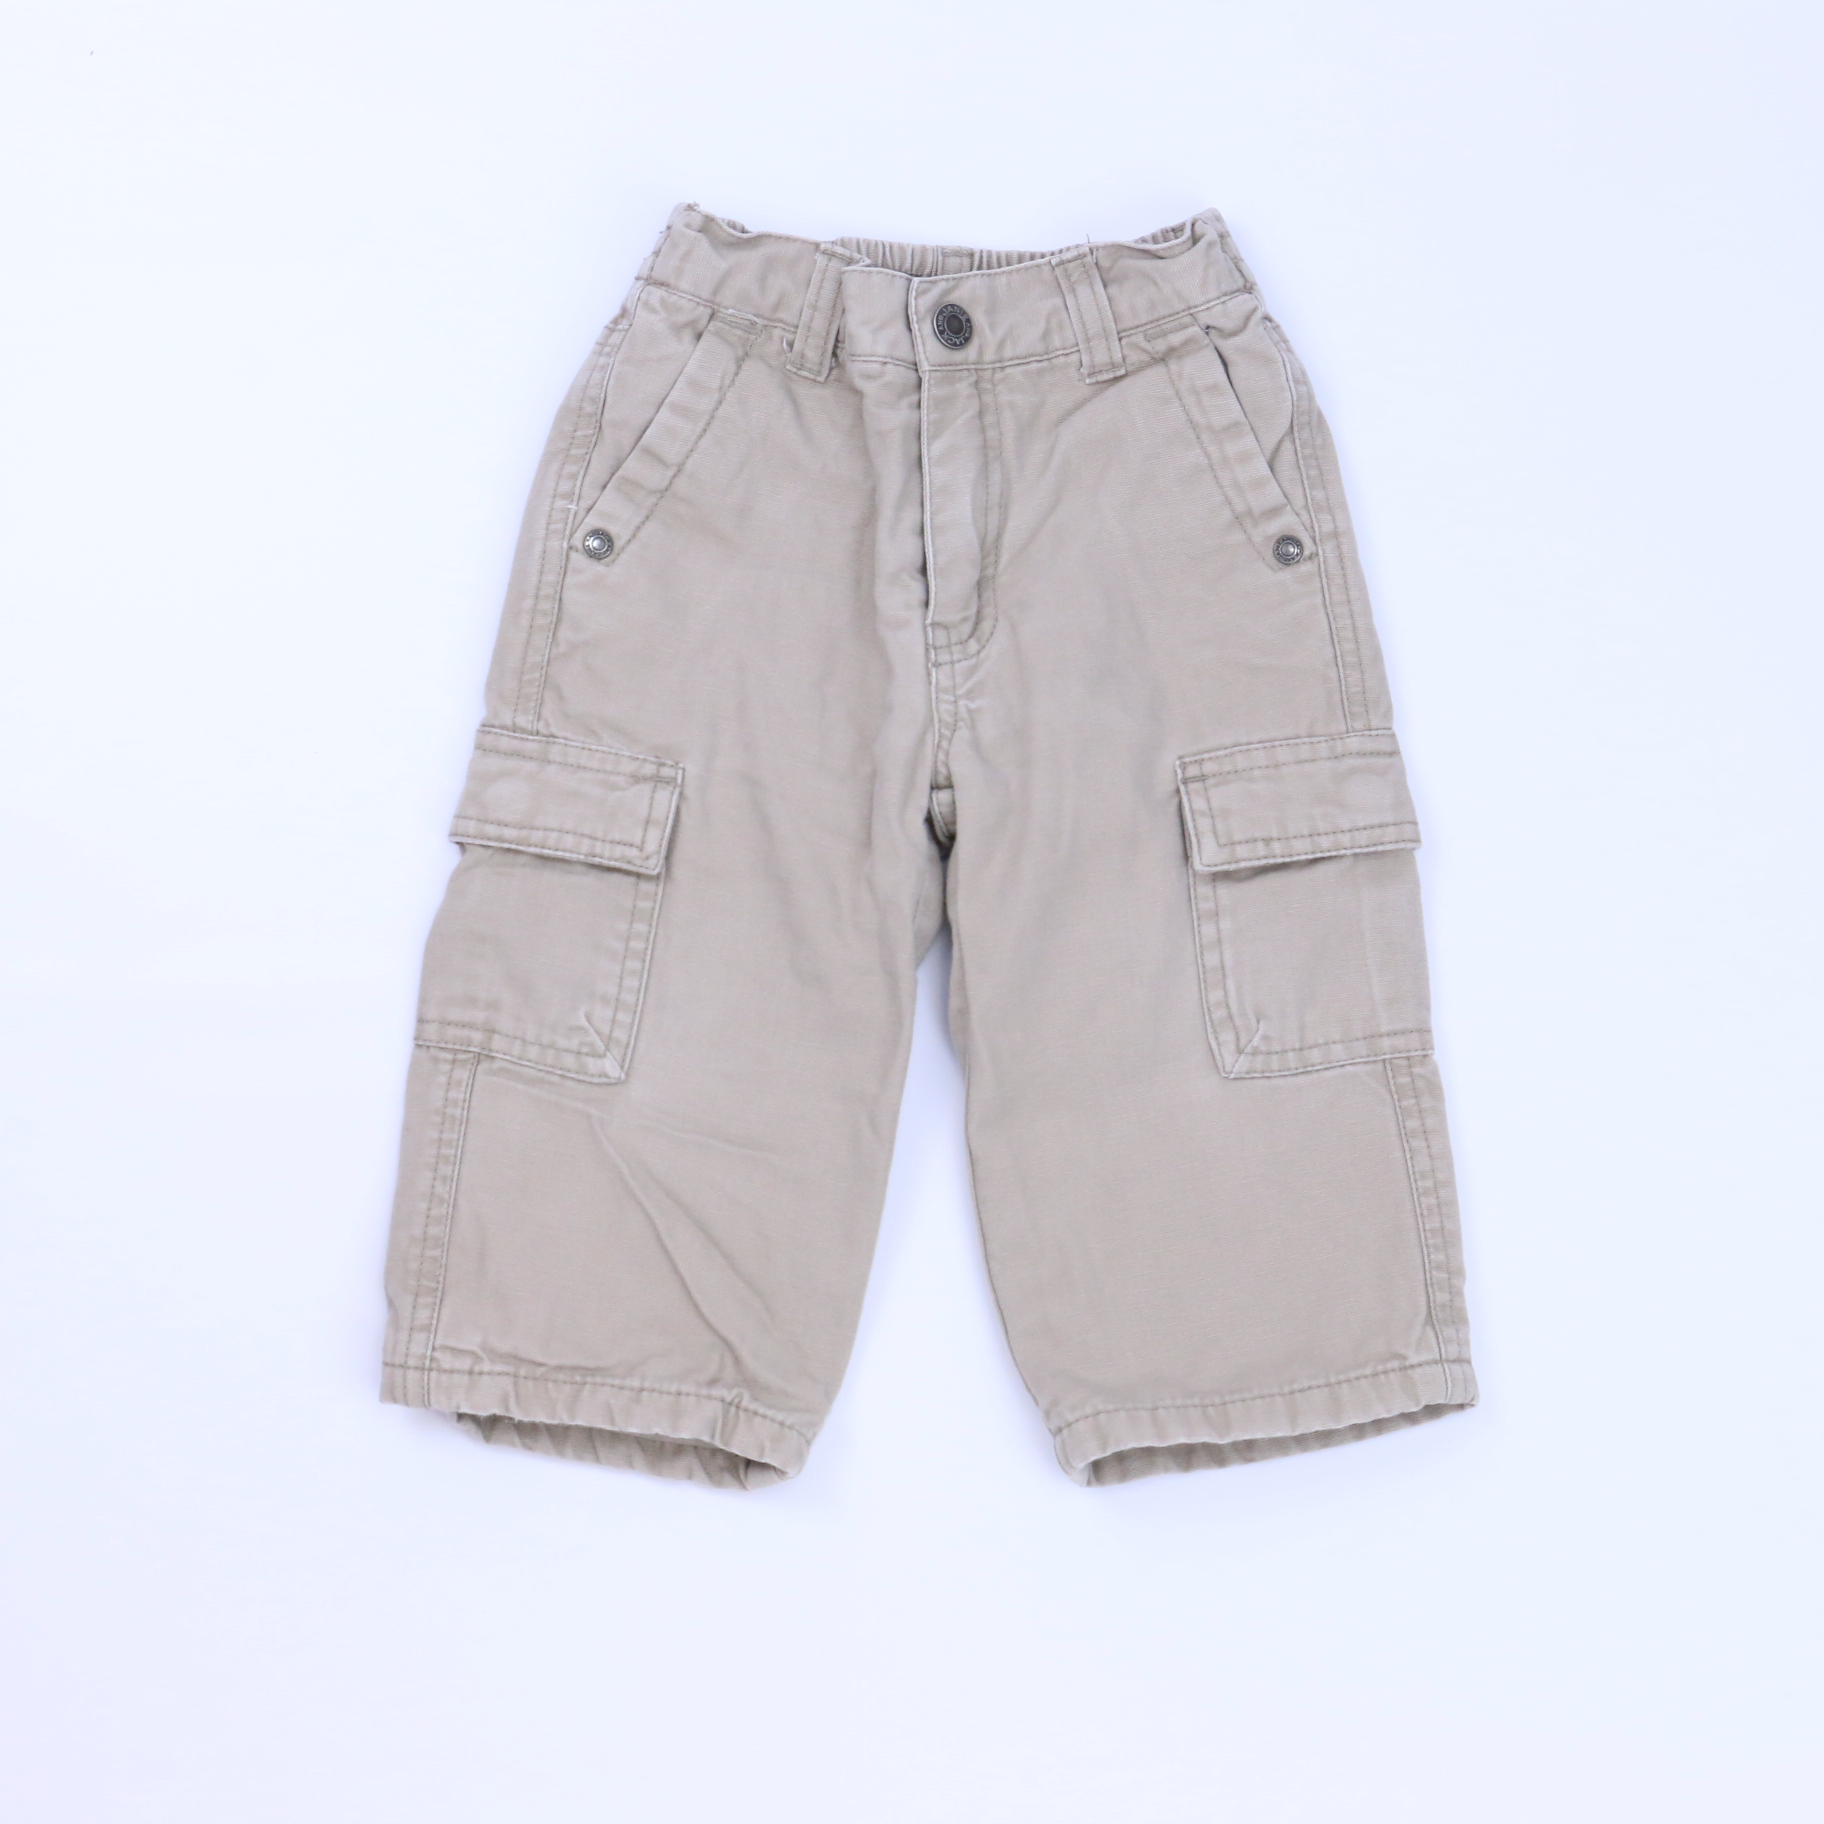 ff069630d42af Cargo Pants size: 12-18 Months - The Swoondle Society